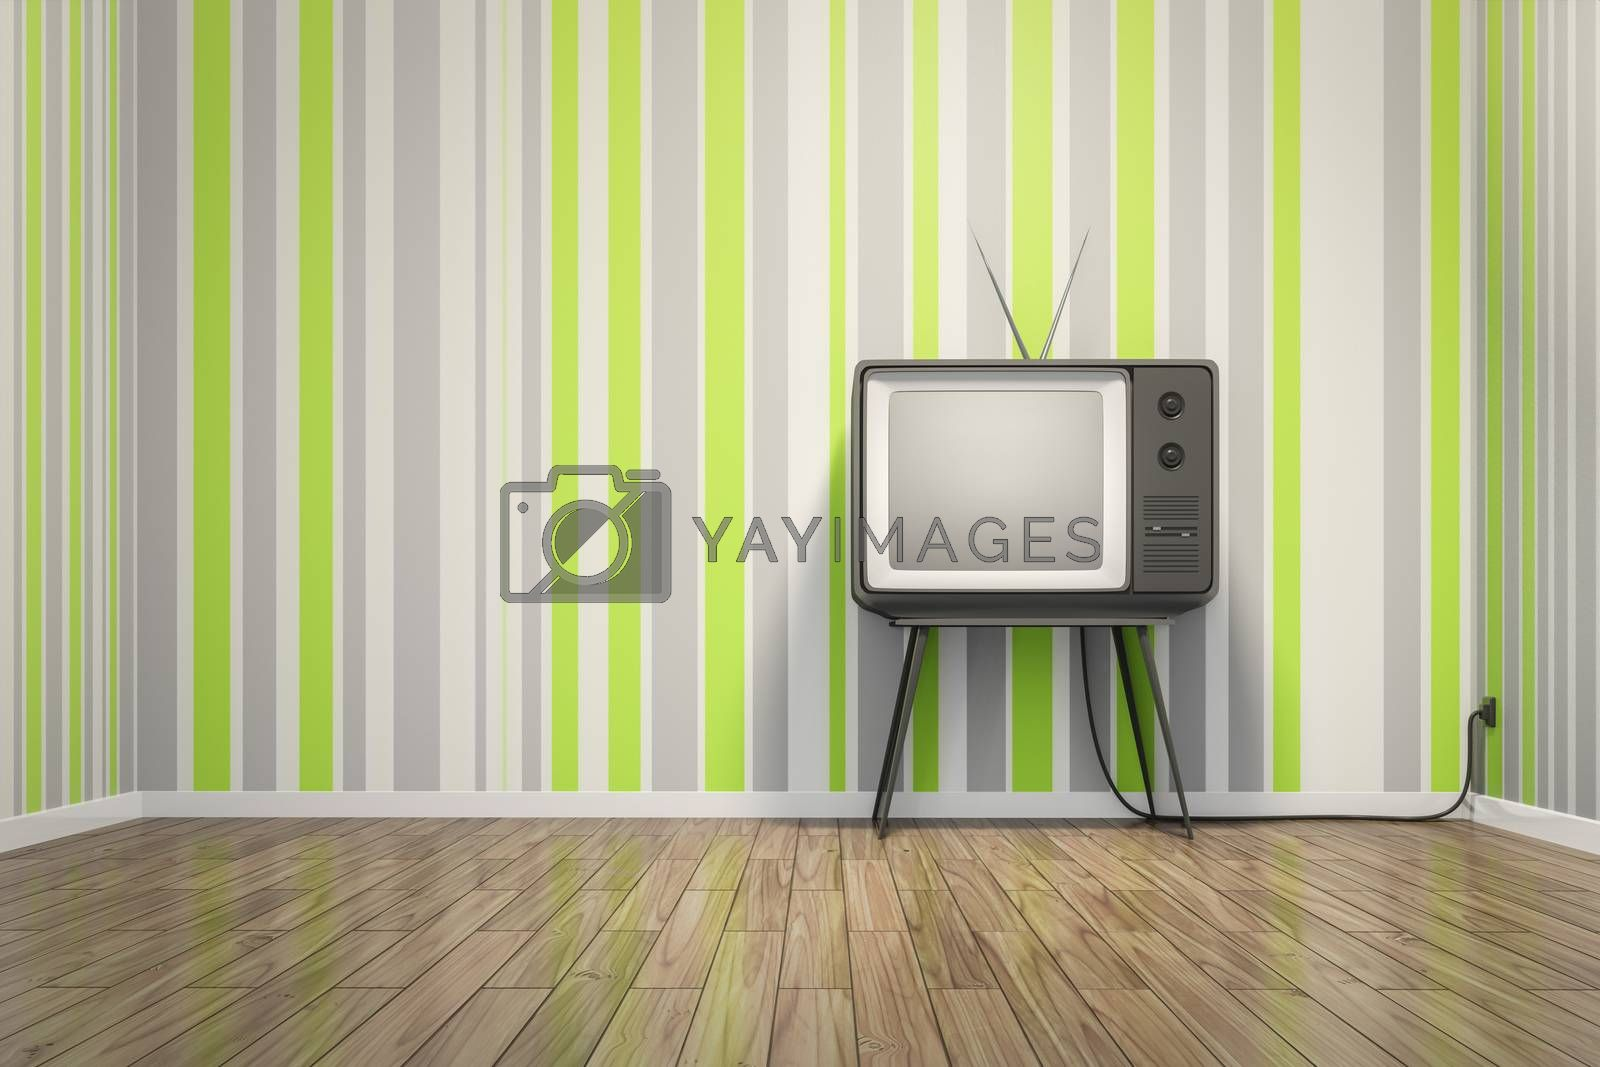 an old vintage tube television in seventies style room 3D illustration